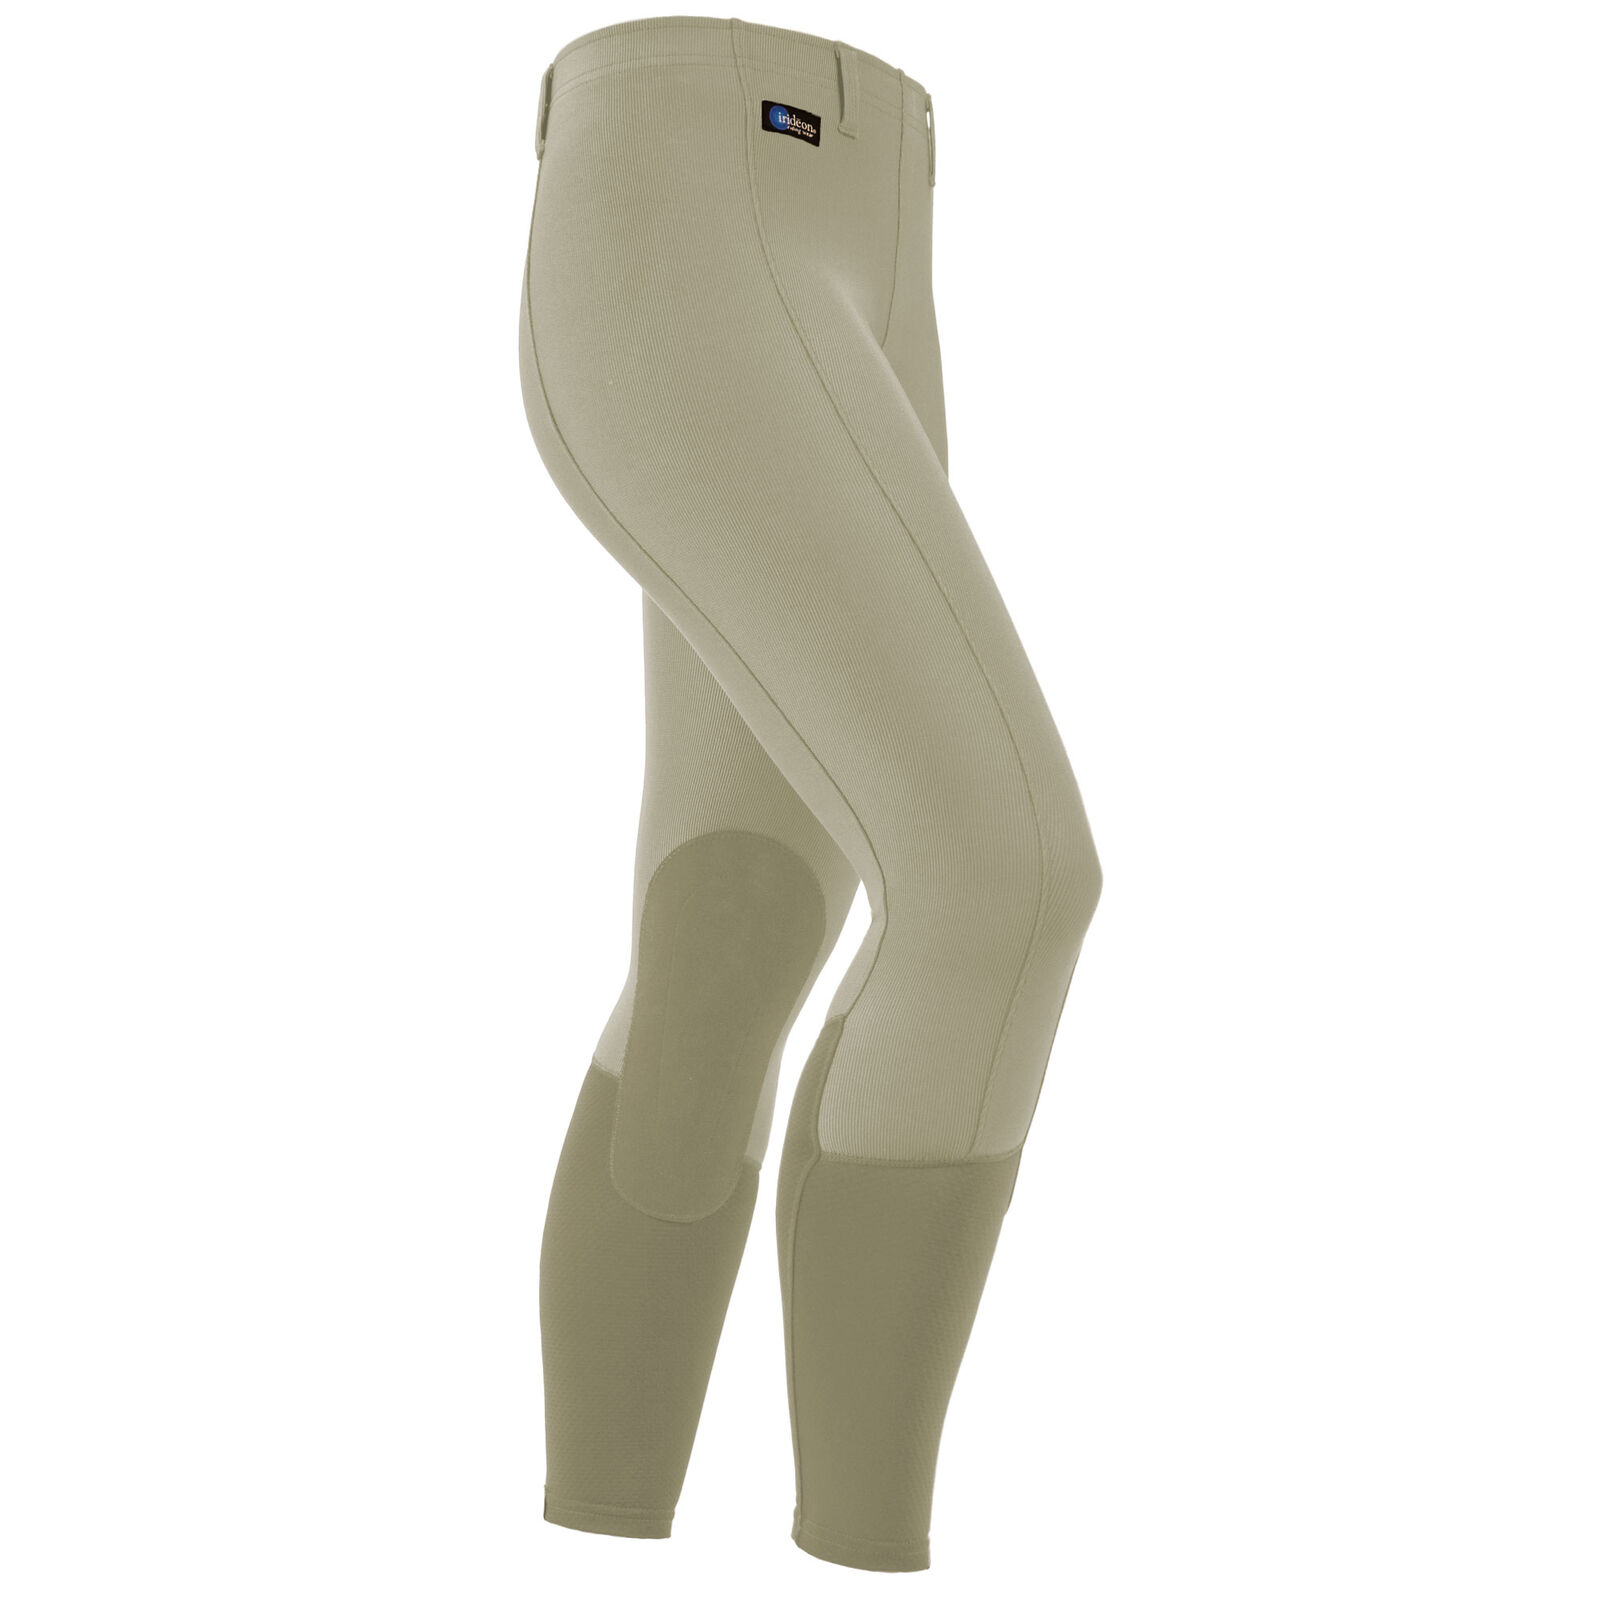 Irideon Cadence Knee Patch Riding Breeches with Gripper Elastic at Ankle